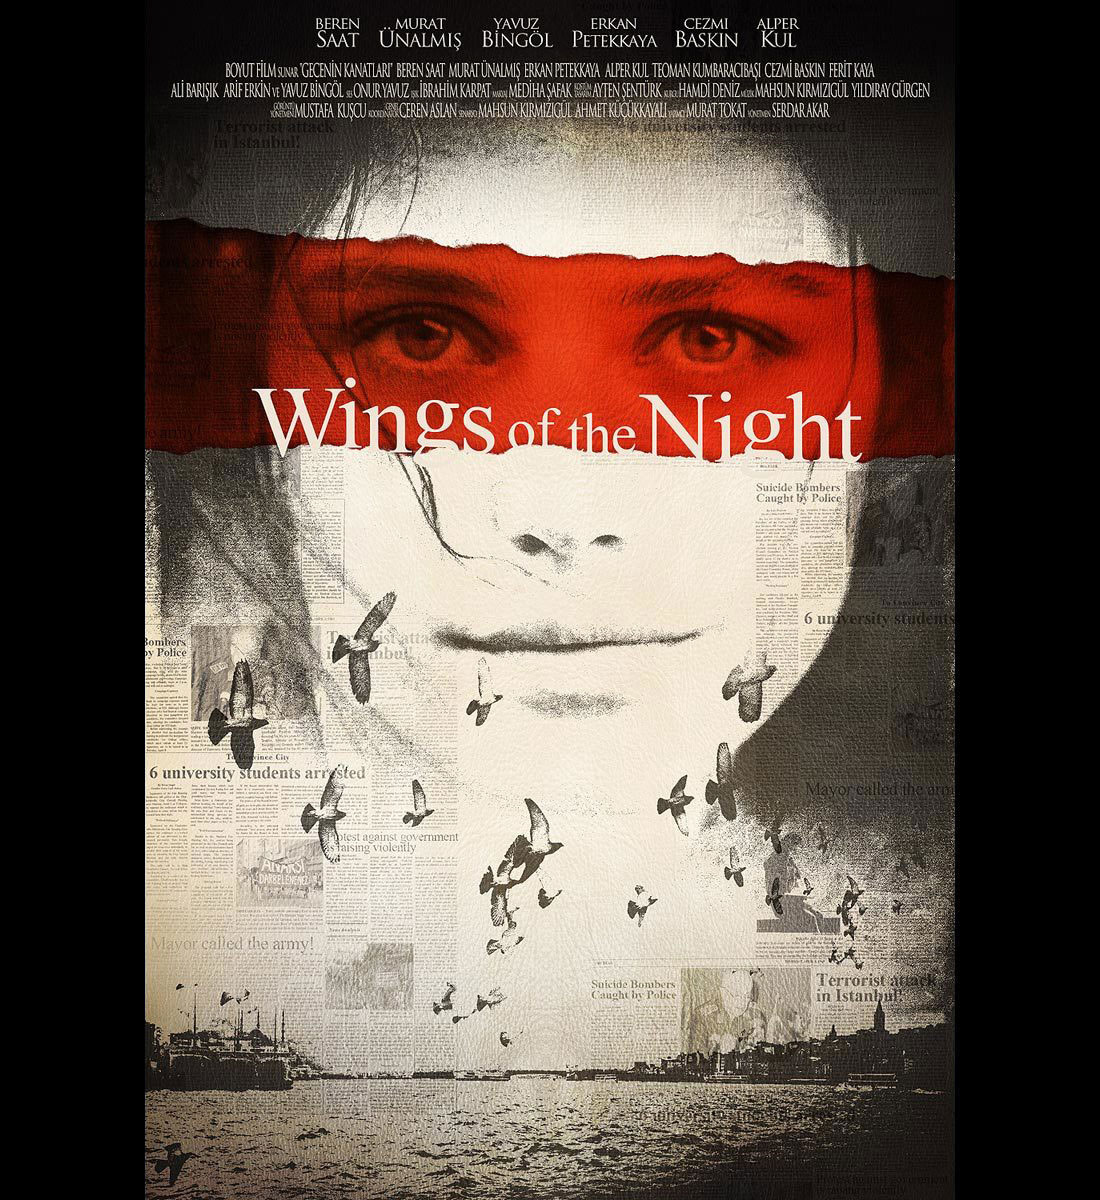 wings-of-the-night-01